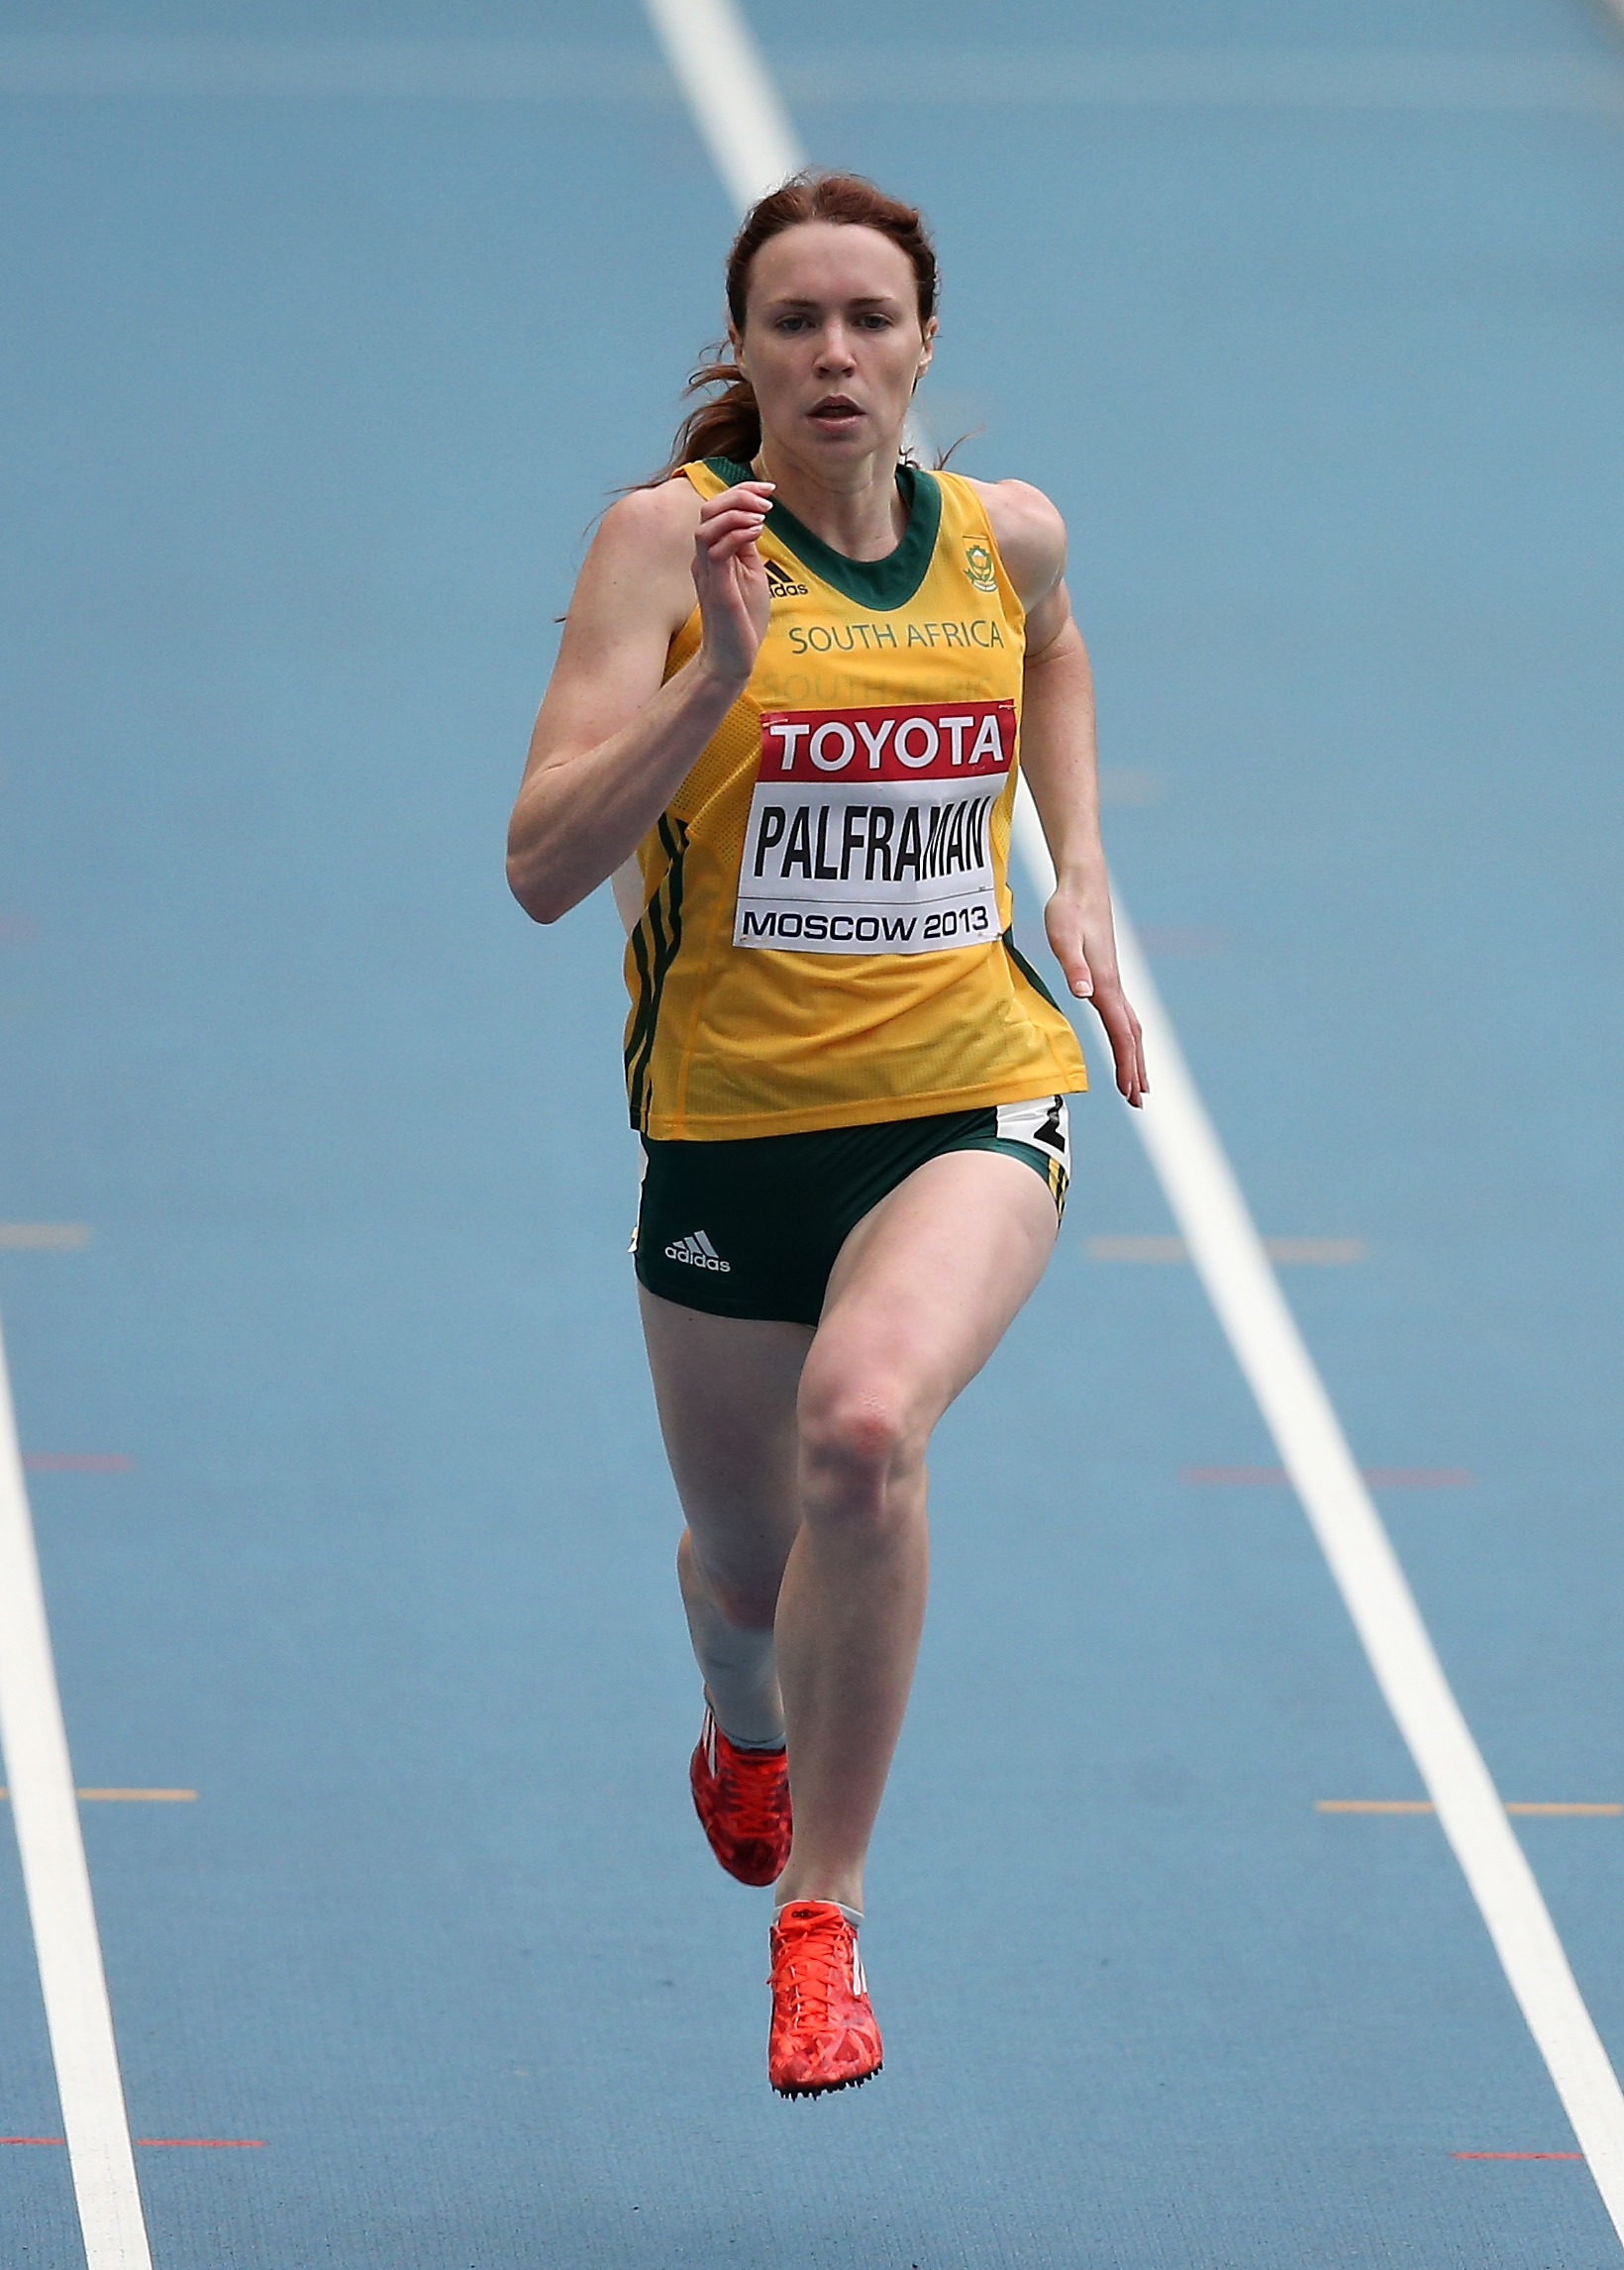 Justine Palframan of South Africa competes in the 14th IAAF World Athletics Championships Moscow 2013 at Luzhniki Stadium